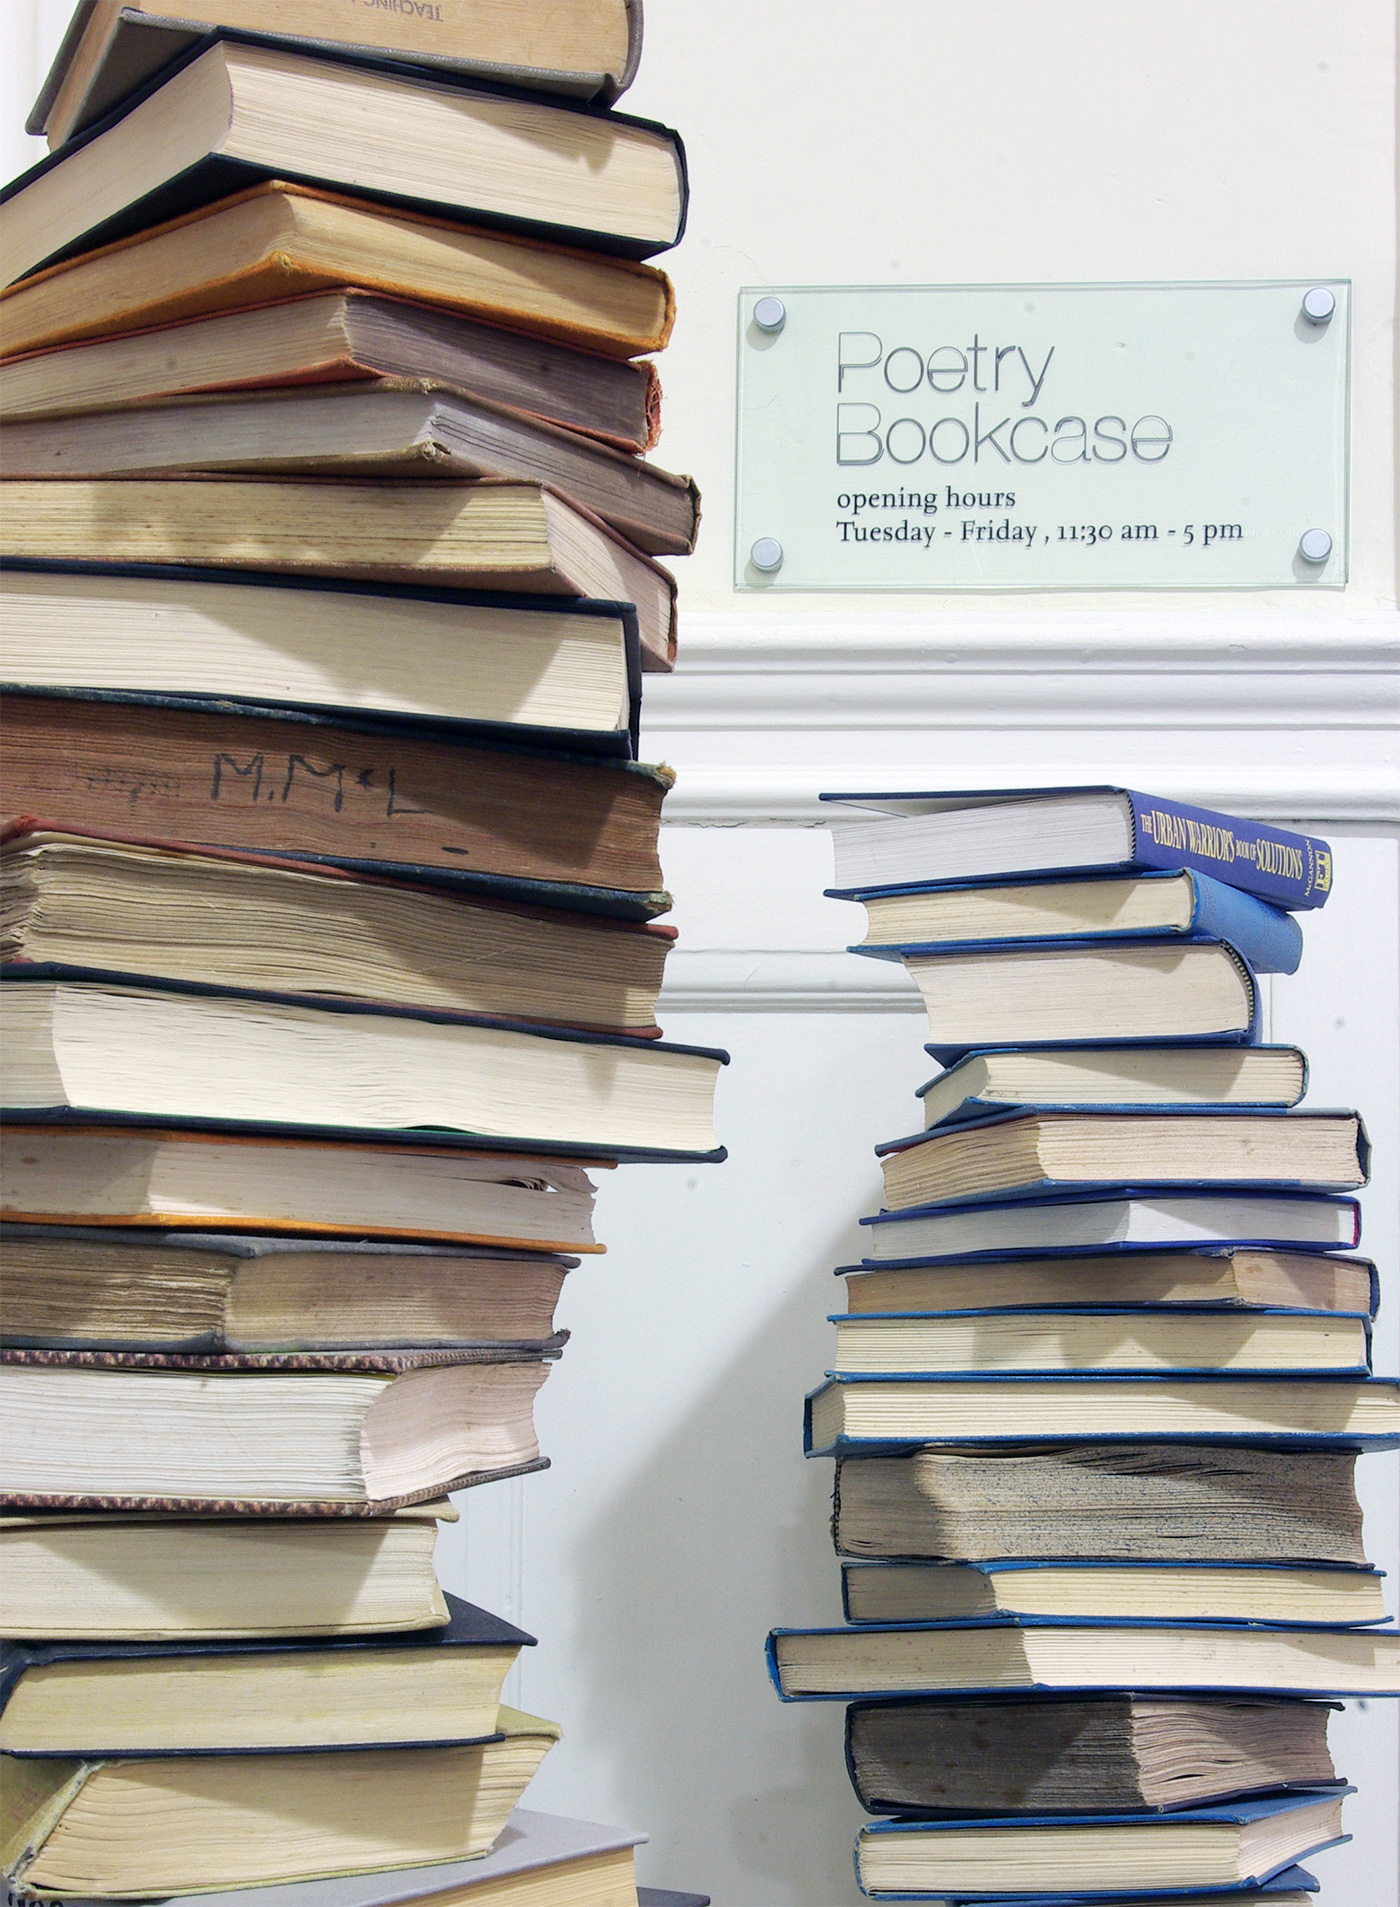 """Litfest's Poetry Bookcase"" by Lancaster Litfest is licensed under CC BY 2.0"